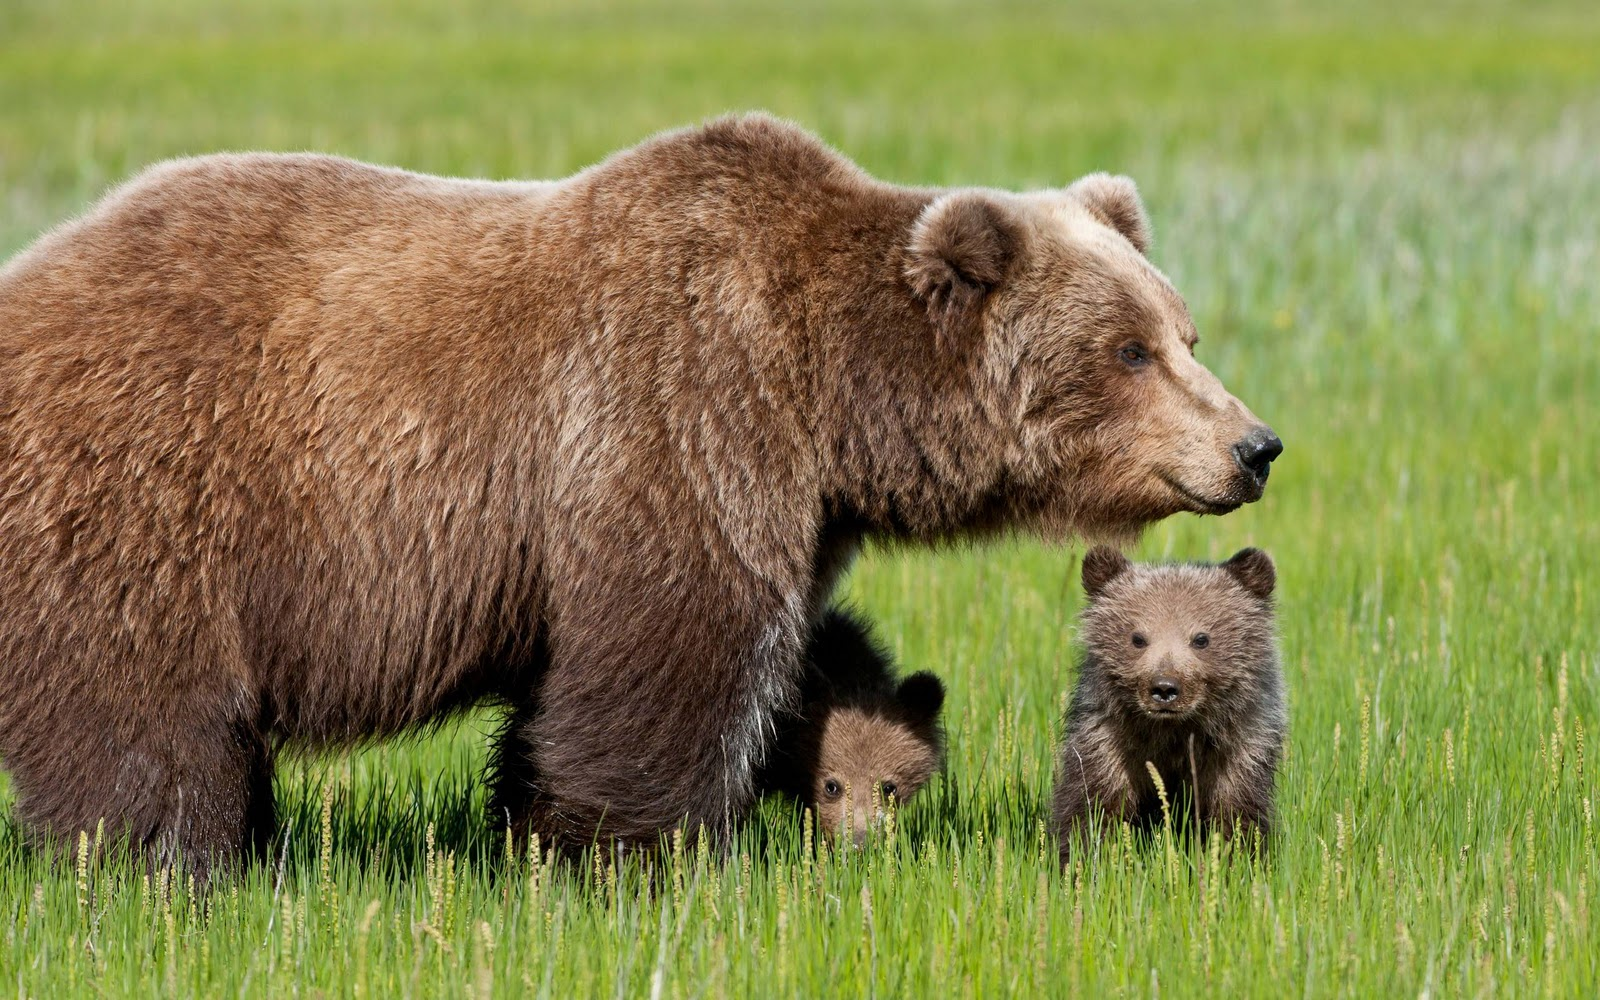 http://3.bp.blogspot.com/-Un5HxHydPz8/TwV0xfqJWHI/AAAAAAAAGcI/nqwGlpDT9To/s1600/bear_cubs_with_mother_wallpaper.jpg